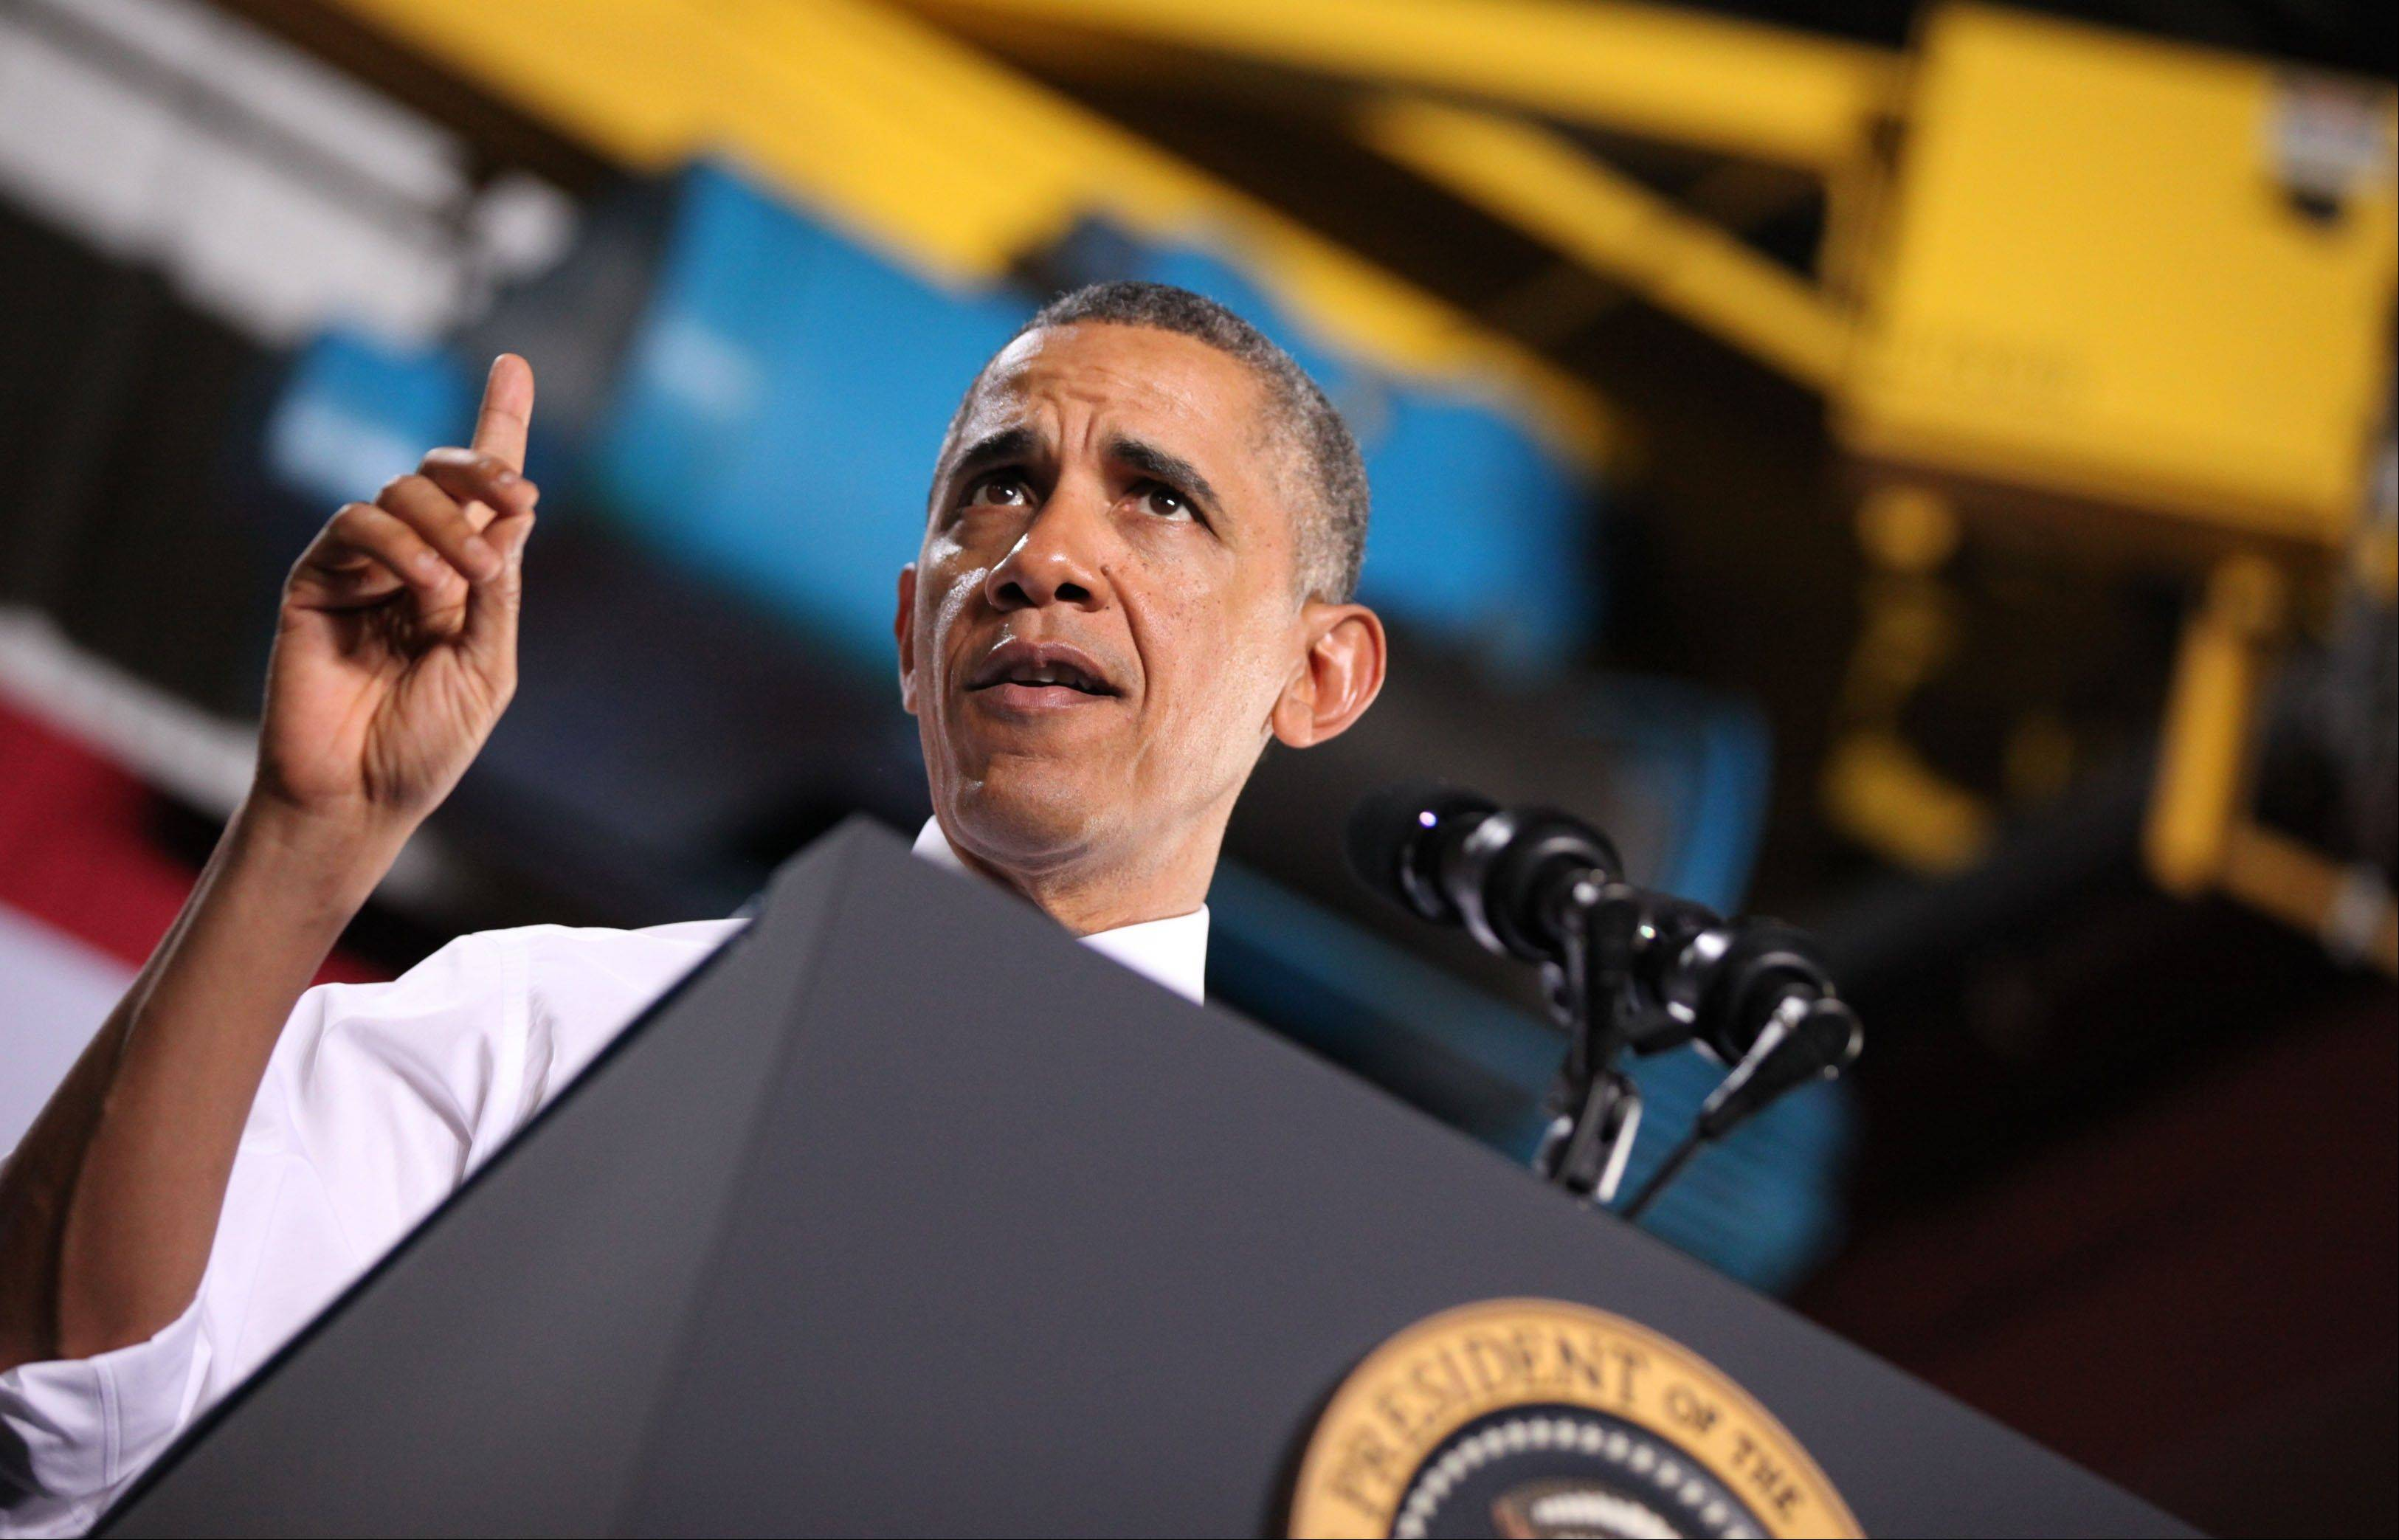 President Barack Obama speaks at General Electric's gas engine facility in Waukesha, Wis., Thursday. The visit is part of a four-state tour the president is making following his State of the Union speech on Tuesday.